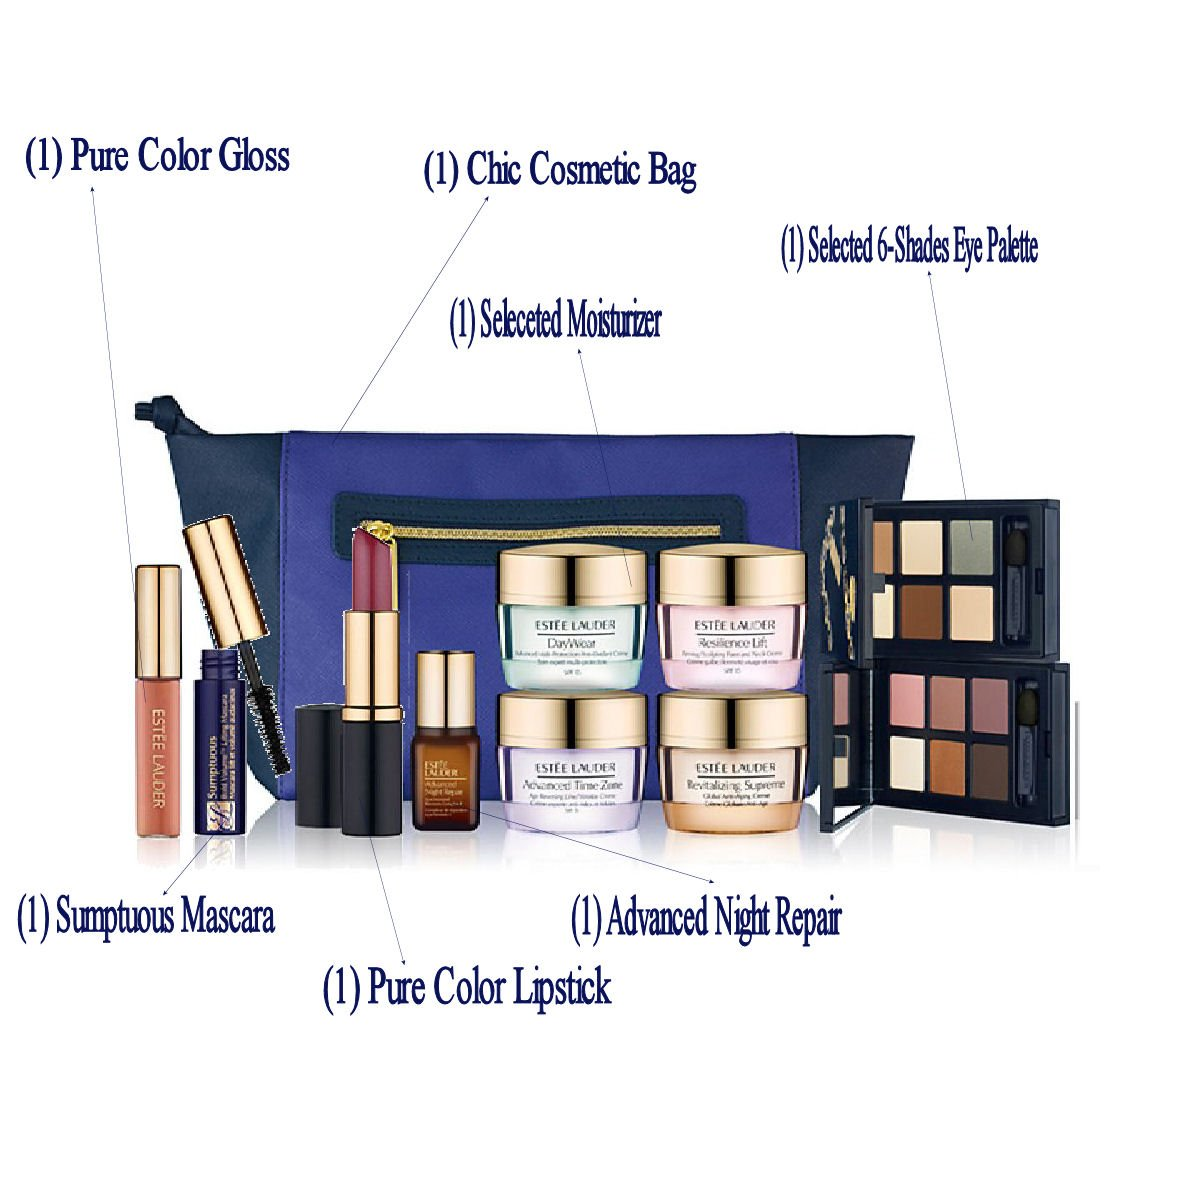 Estee-Lauder-2014-Bloomingdales-7-Pieces-Gift-Set-Advanced-Night-Repair-Cream-6-shade-Eyeshadow-and-More-Plus-Chic-Clutch-Cosmetic-Bag